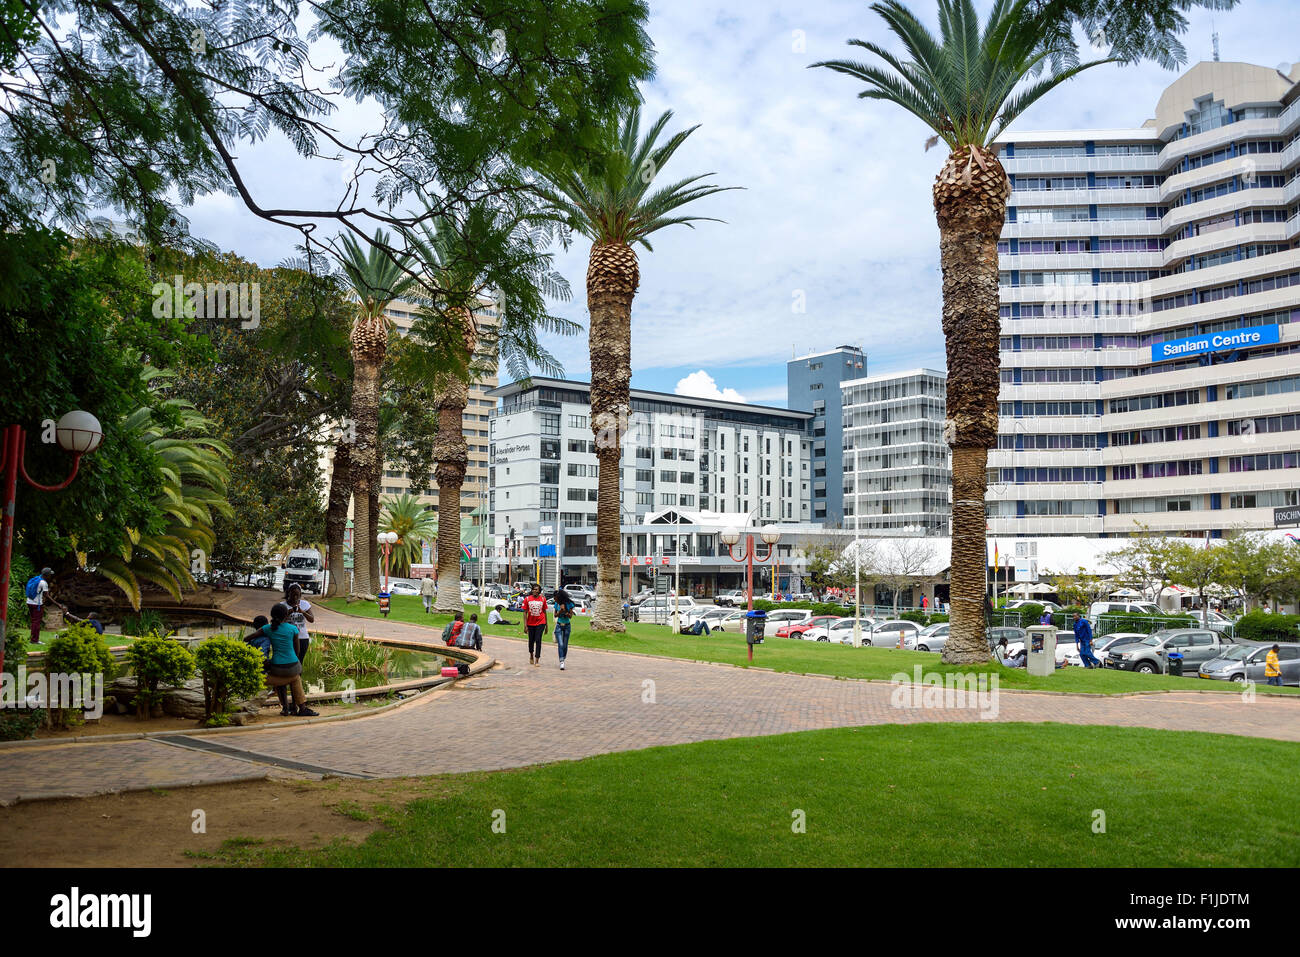 Zoopark, Independence Avenue, Windhoek (Windhuk), Khomas Region, Republic of Namibia - Stock Image